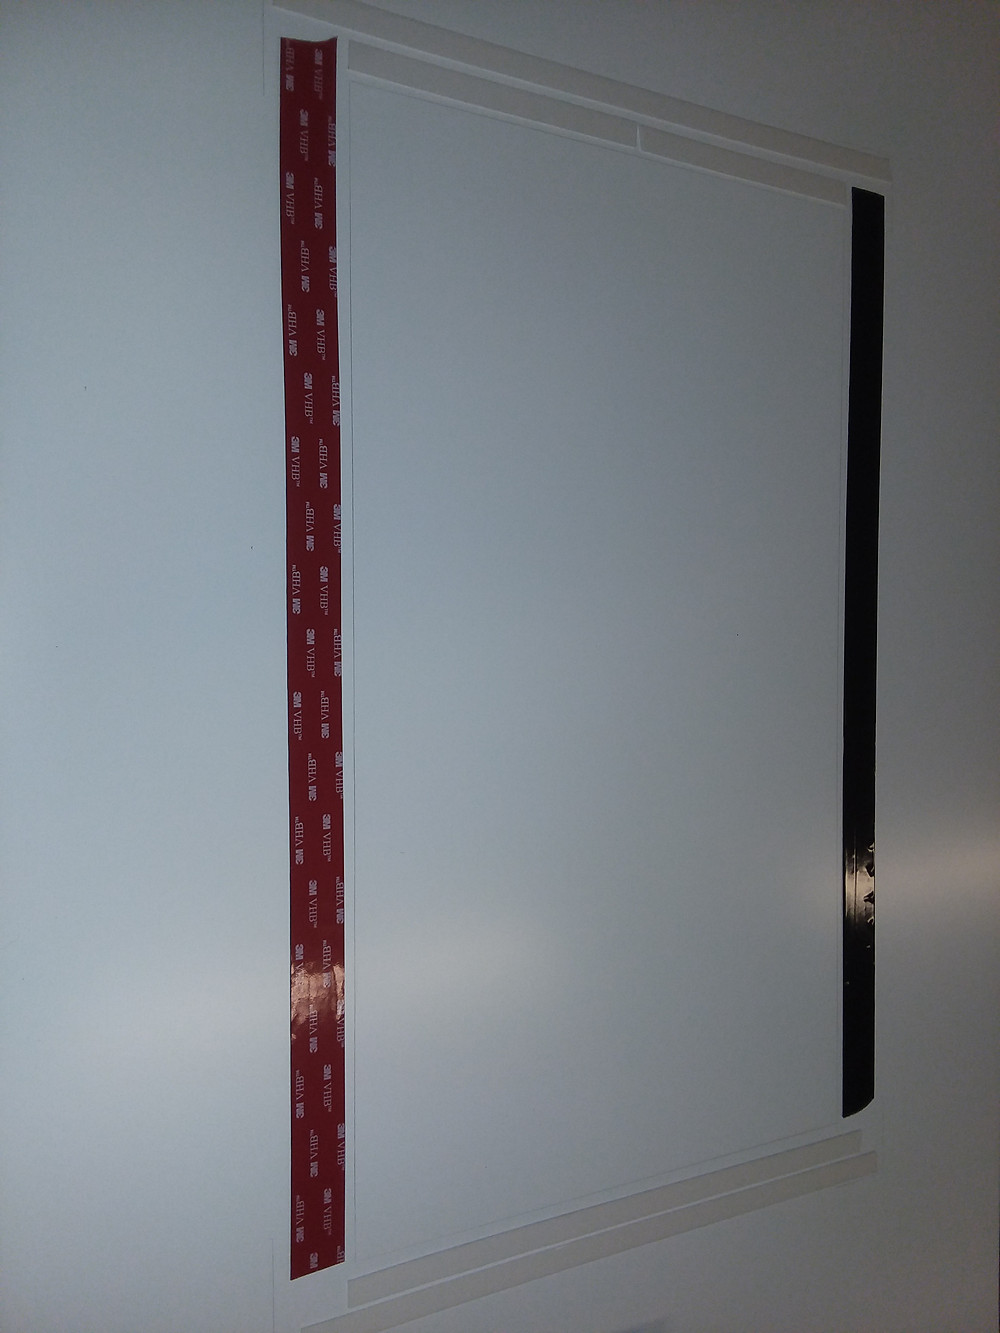 VHB tape is excellent for heavy panels